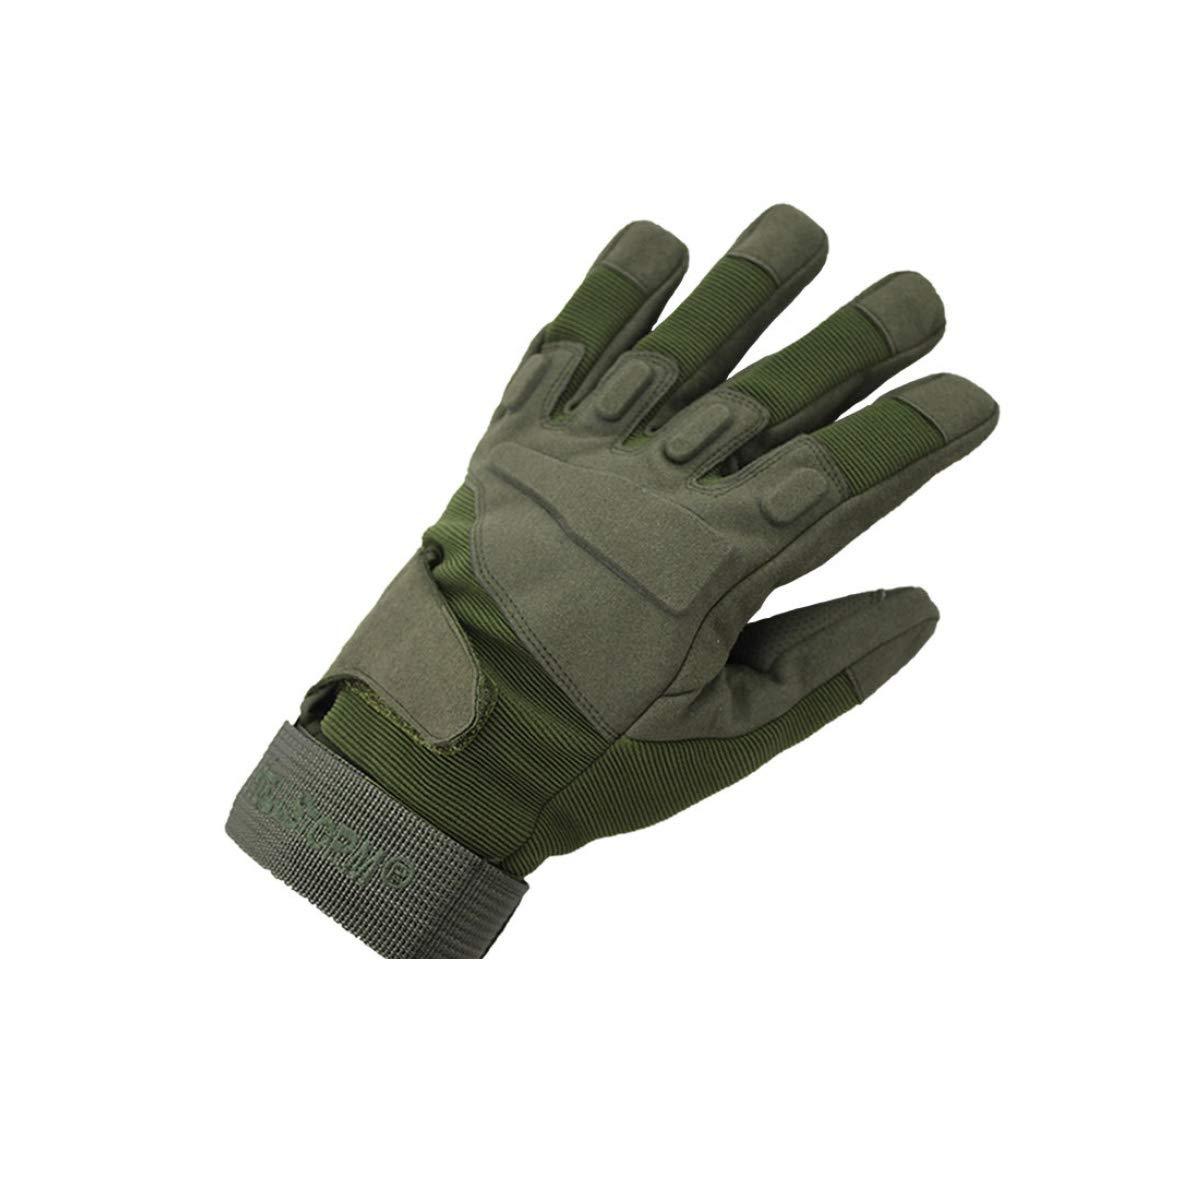 Super Fiber Sports Tactics Full Finger Gloves Parkour Gloves Outdoor CS Live Game Equipment Protect your hands